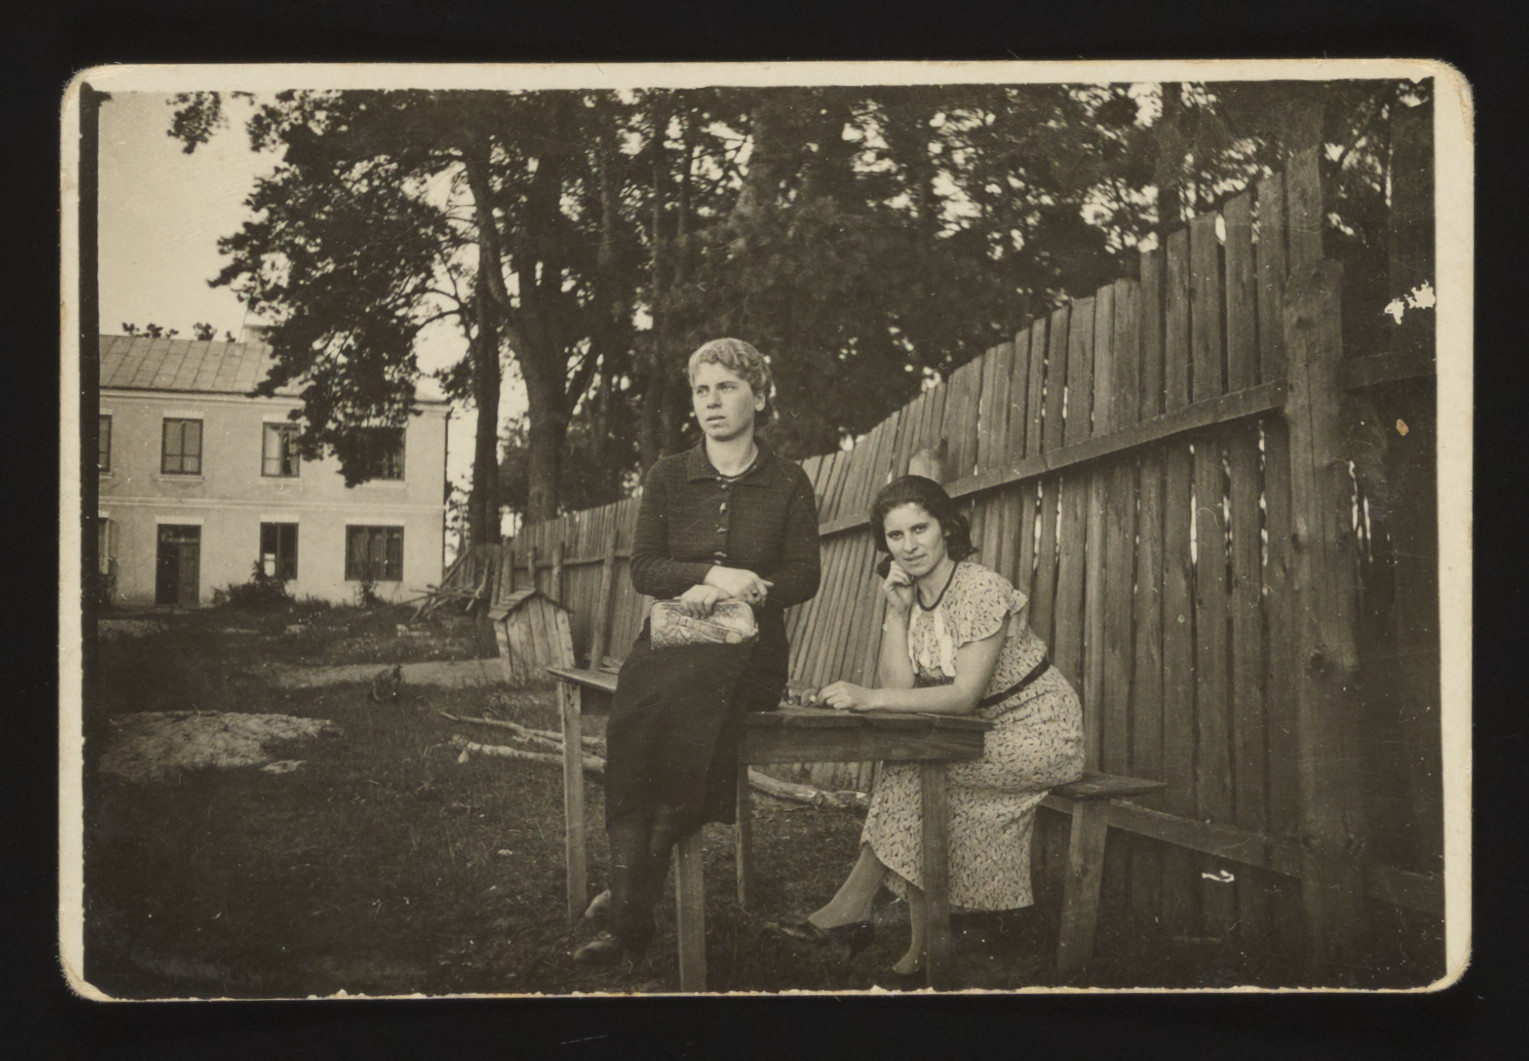 Two Jewish women from Kozienice sit on and next to an outdoor table by a wooden fence.  Pictured iare Gitl Szabason Weintraub who perished in Treblinka and Szprinca Szabason who left Poland for Palestine before the war.